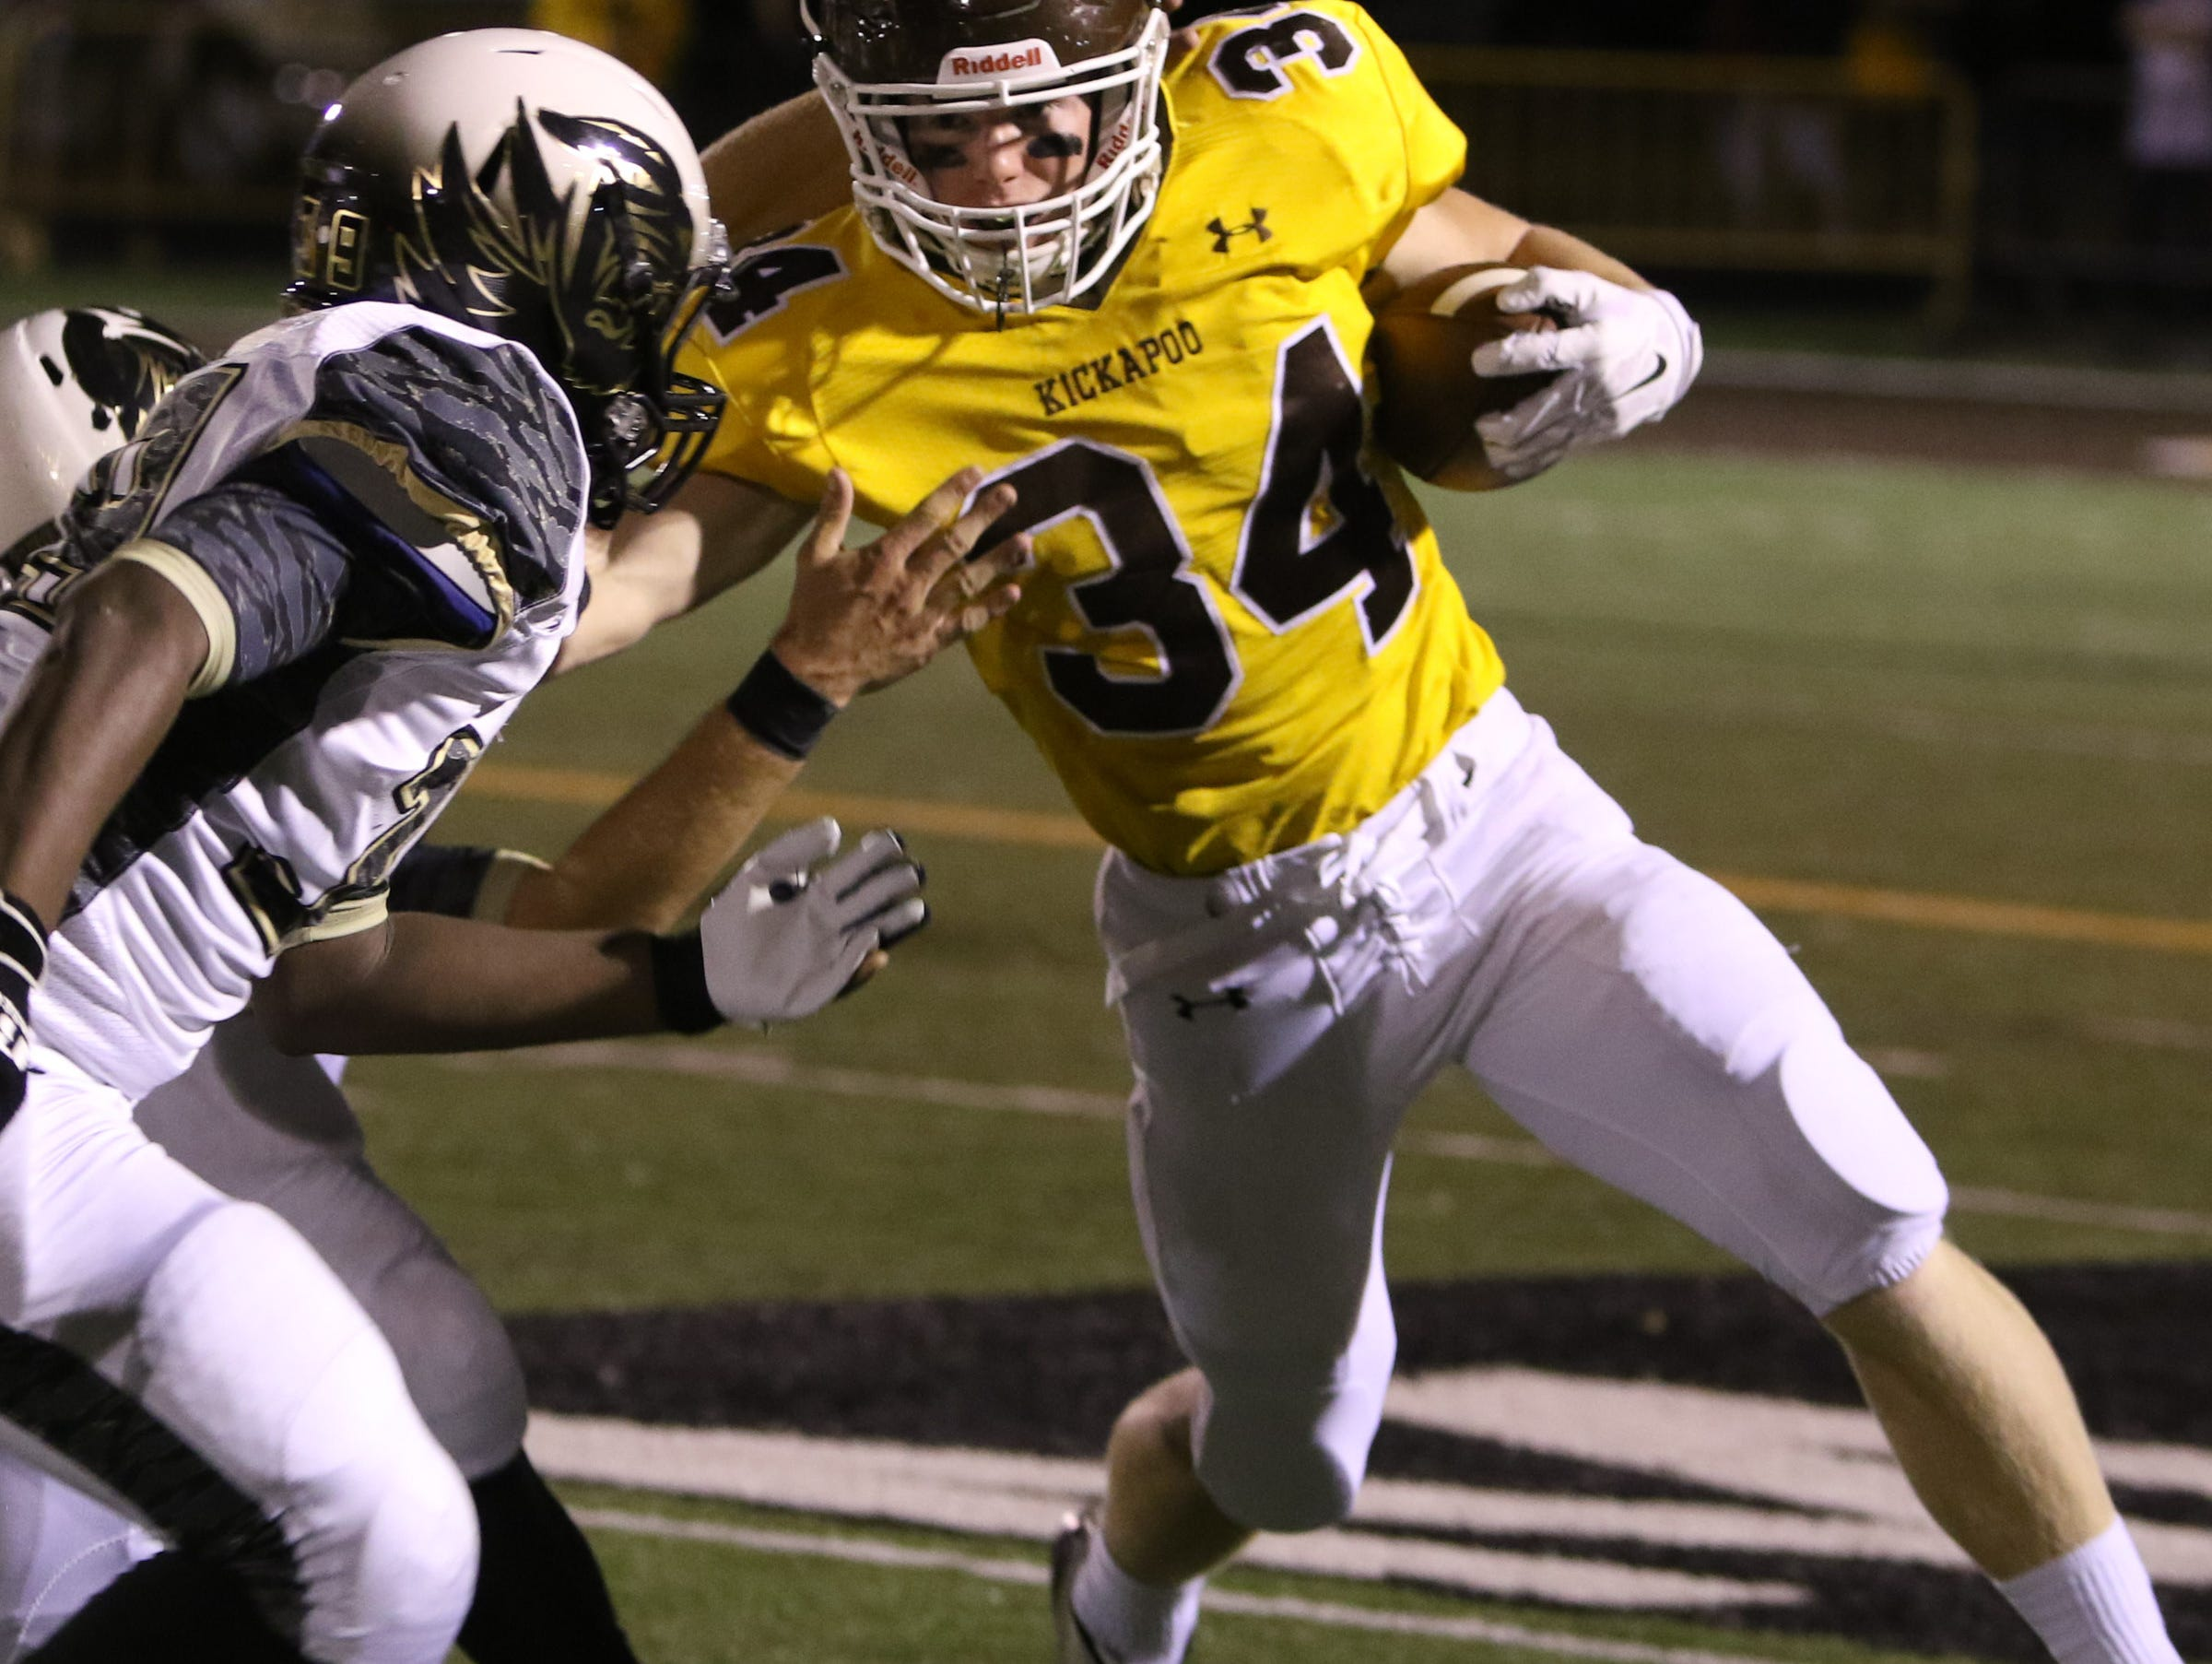 Kickapoo High School running back Maverick McGee fights off Lee's Summit's defense Friday, October 23, 2015. Jason Connel / For the News-Leader